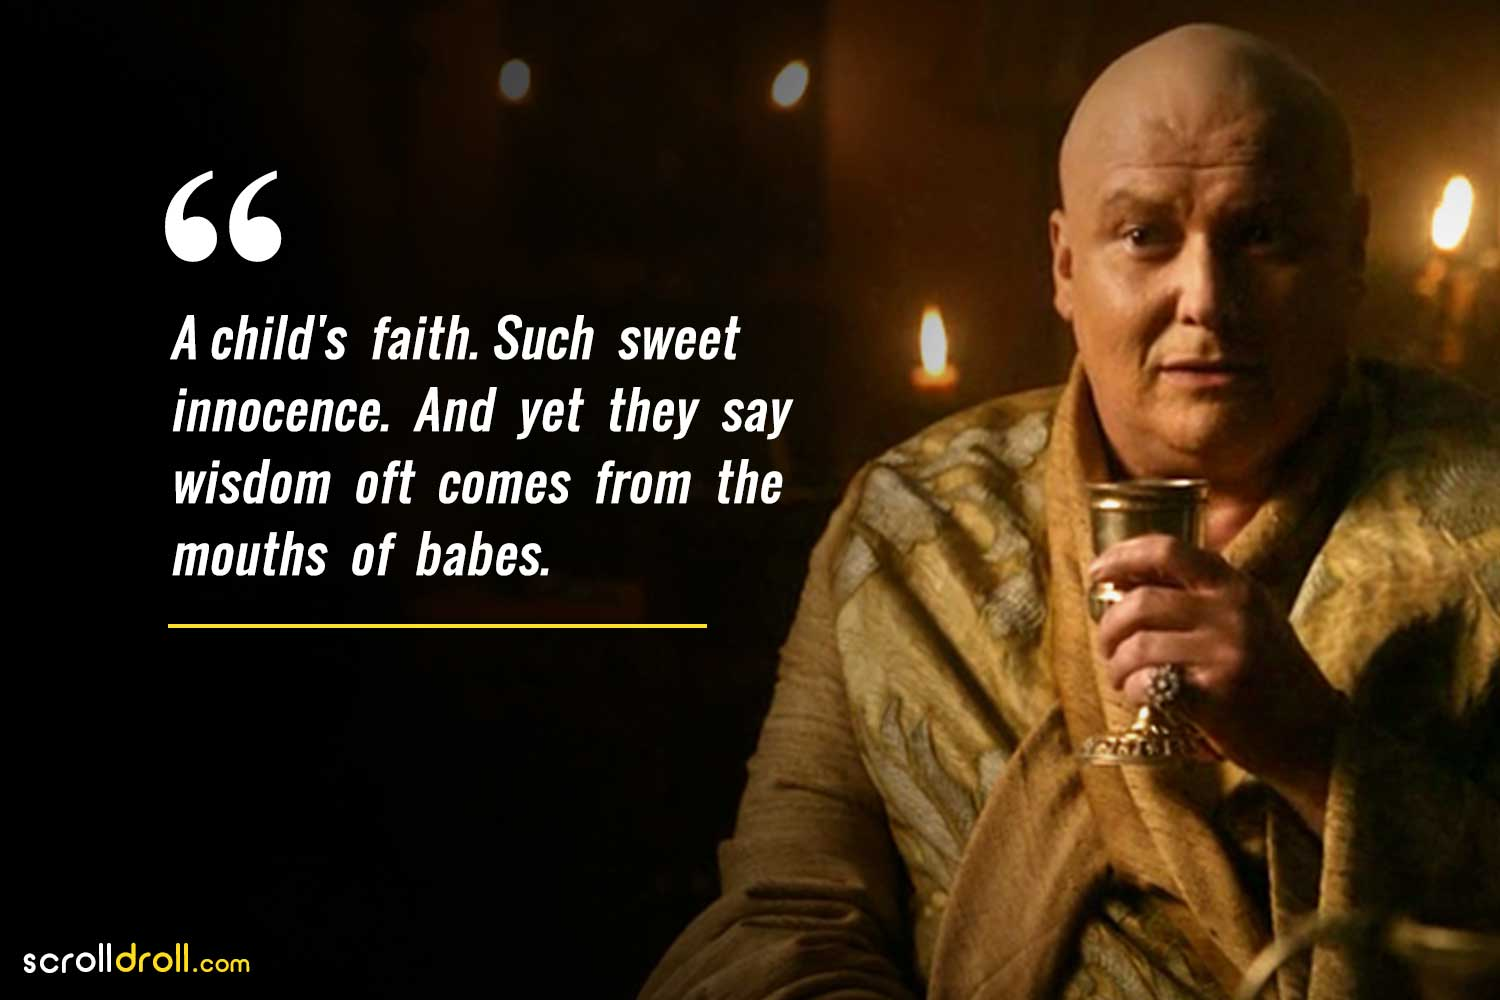 a child's faith such sweet innocence and yet they say wisdom often comes from the mouths of babes-lord varys quotes